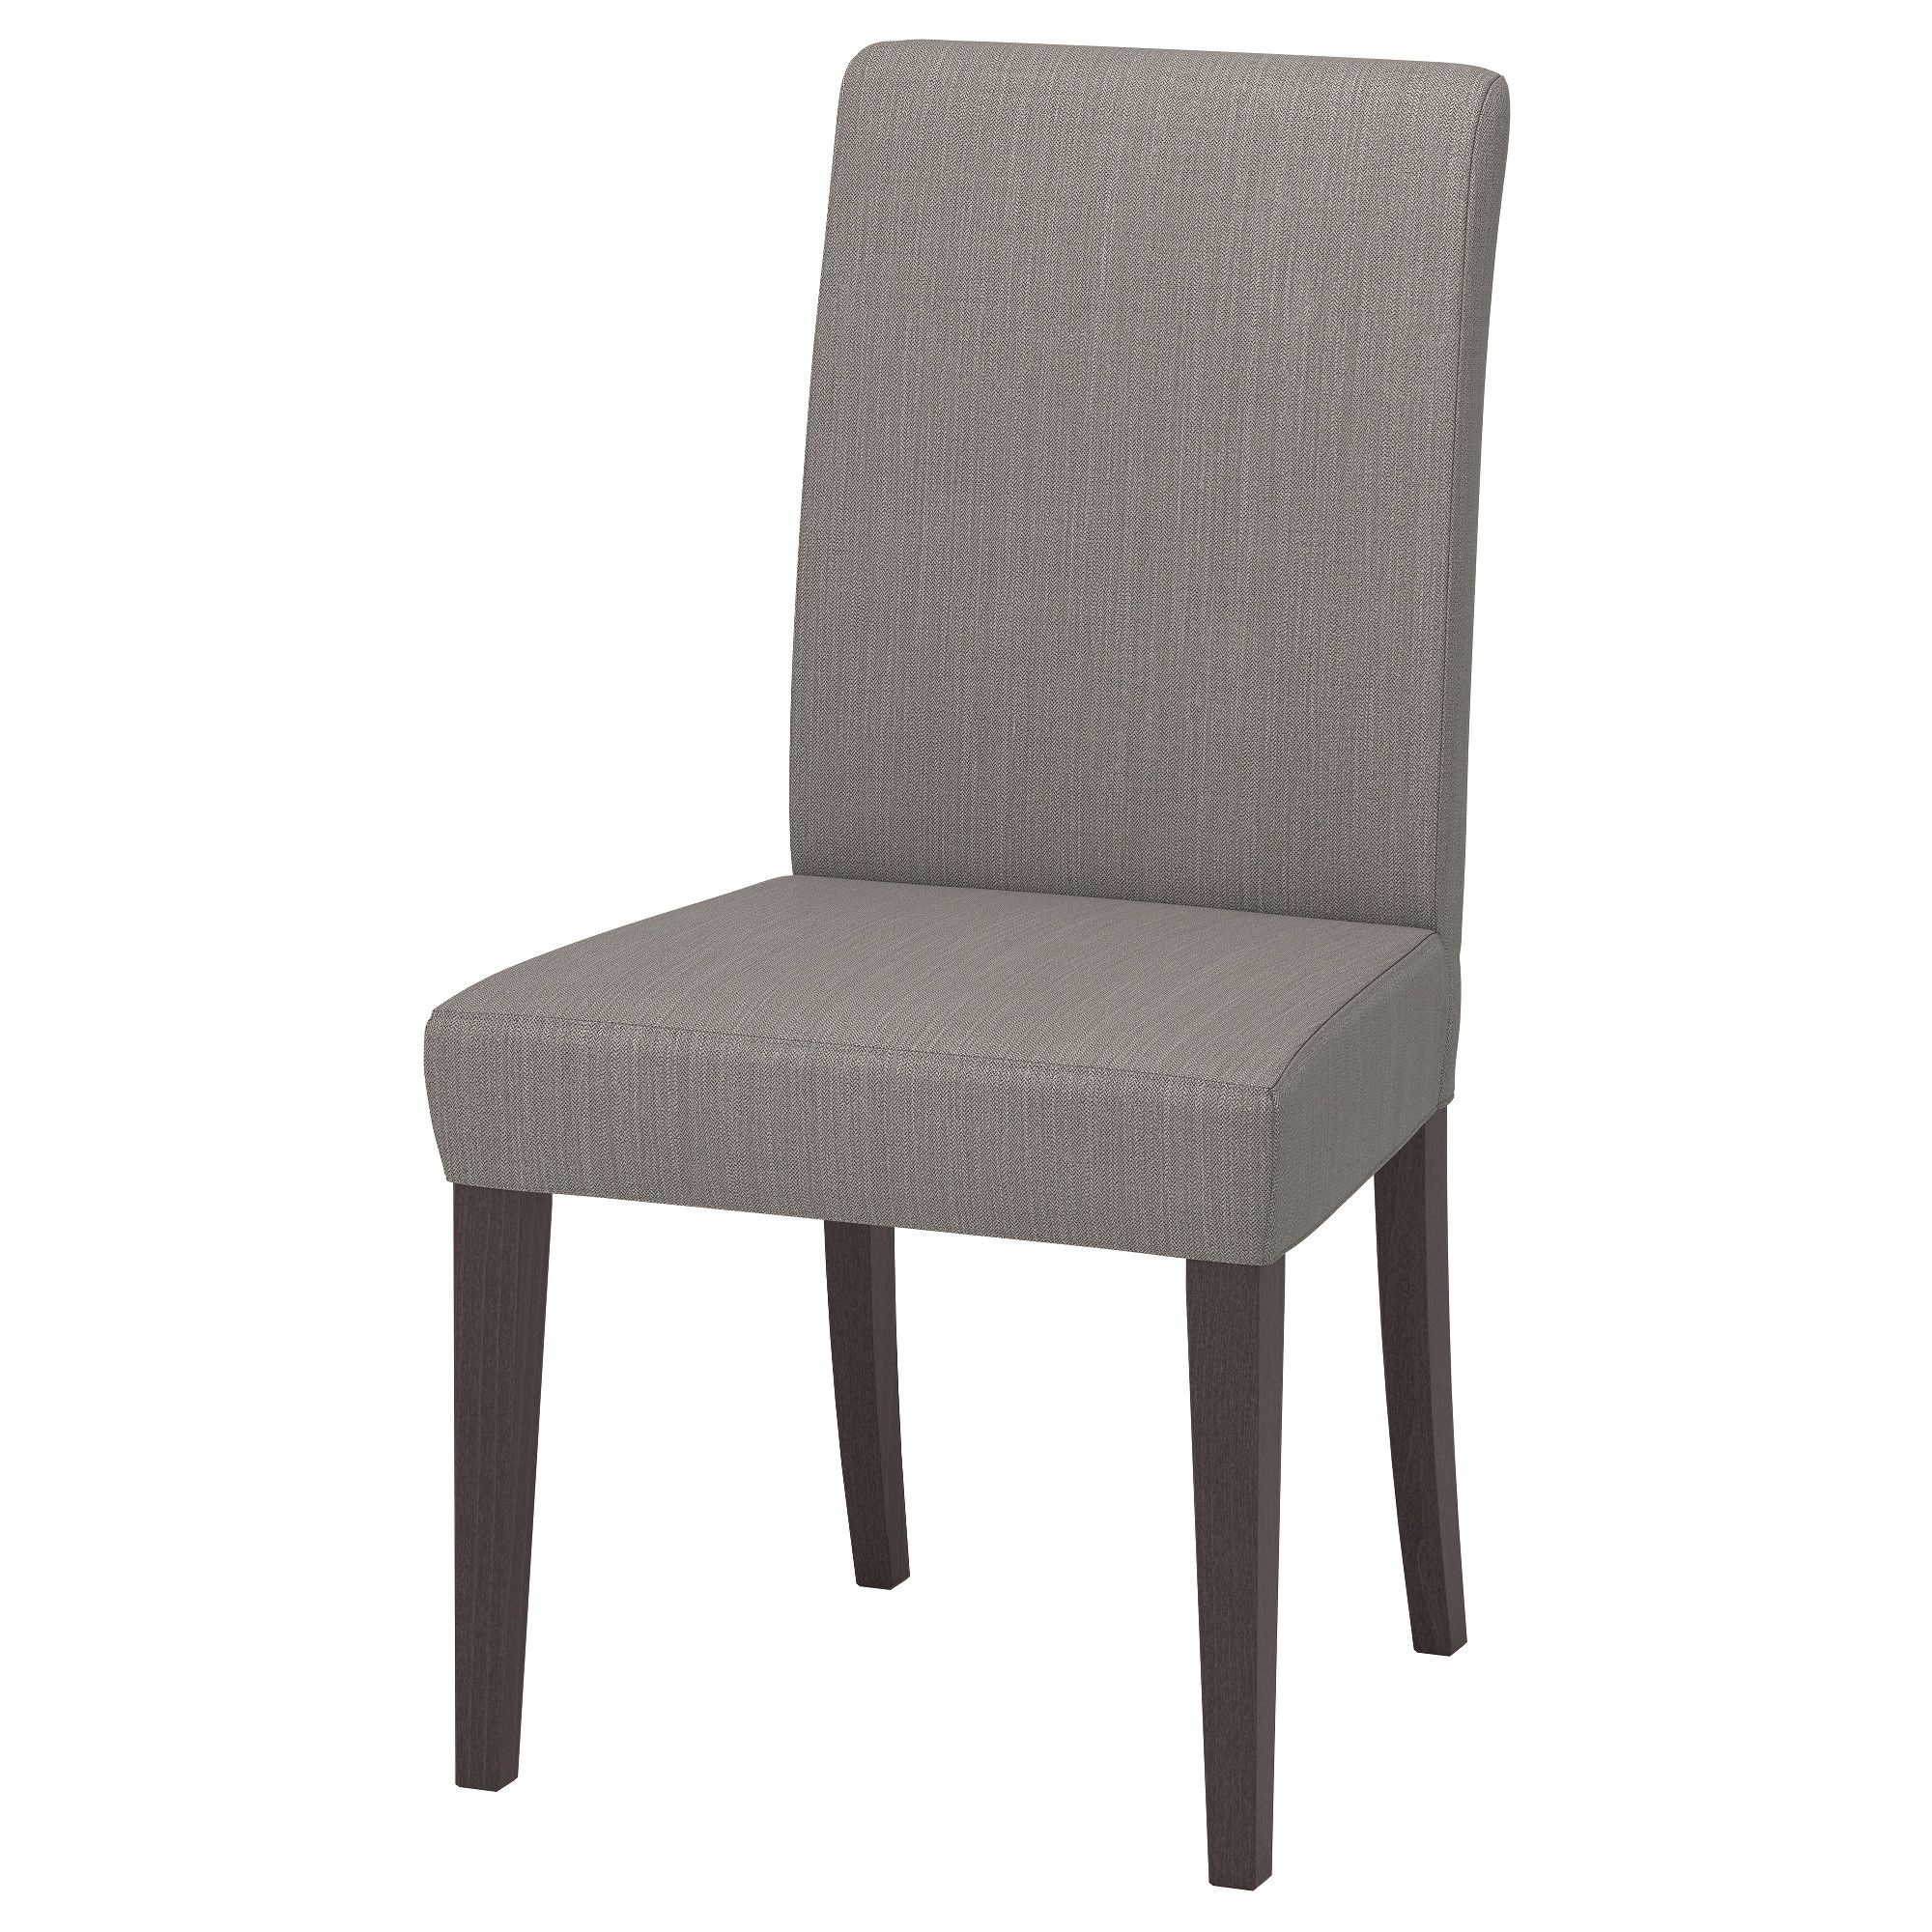 IKEA HENRIKSDAL Dark Brown, Nolhaga Gray Beige Chair | Ikea